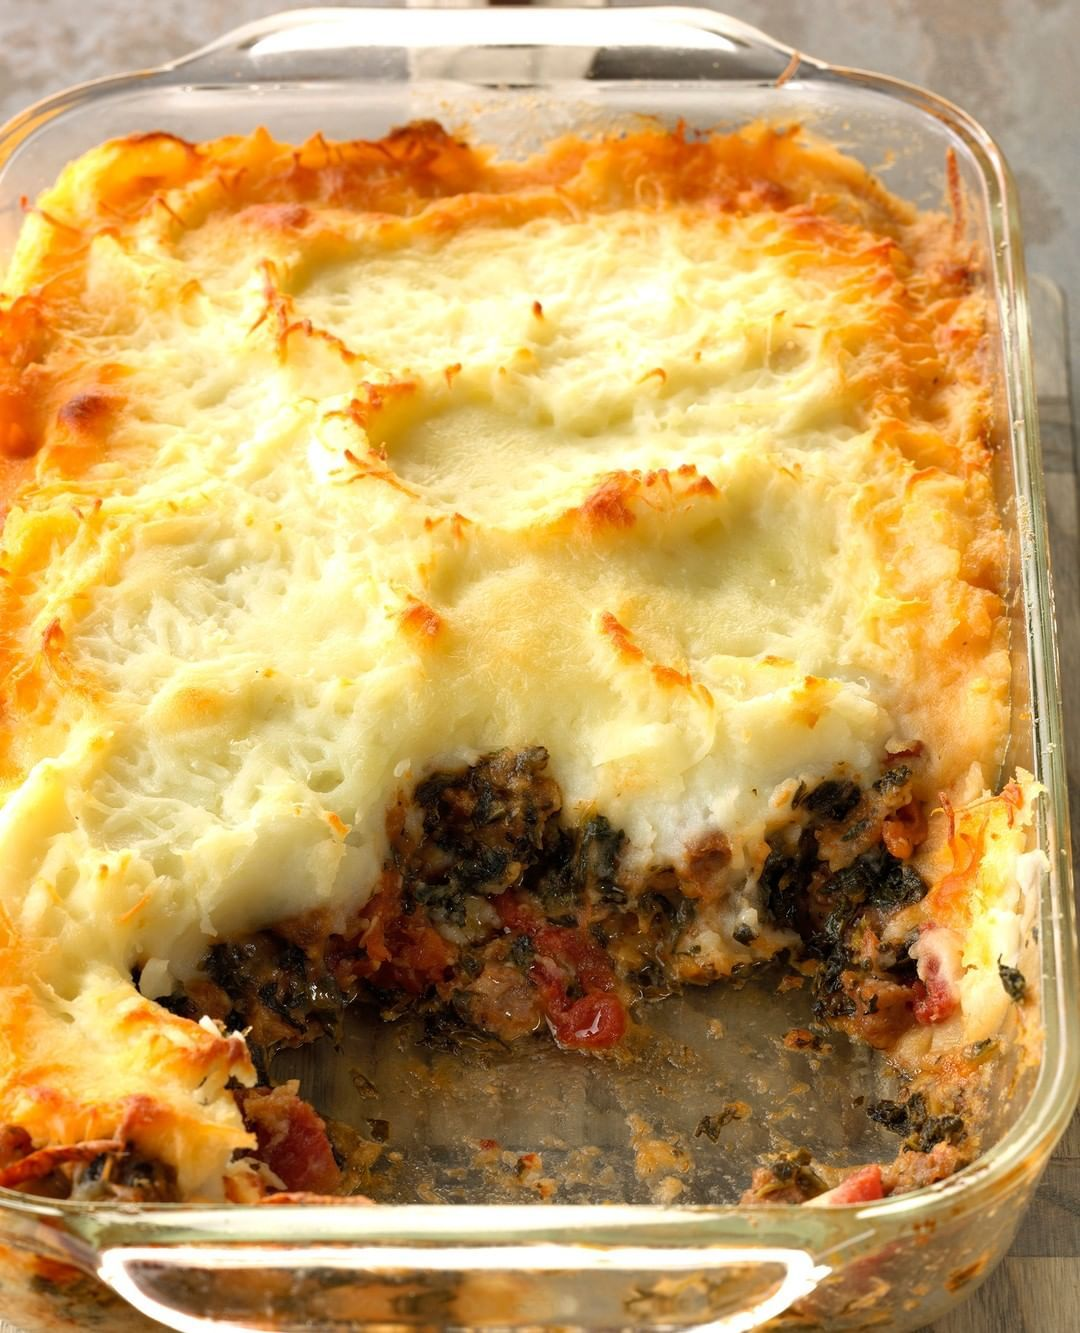 Taste Of Home On Instagram This Italian Take On Shepherd S Pie Is So Simple To Prepare And It Makes Great Leftovers Click The Li In 2020 Recipes Food Shepherd S Pie